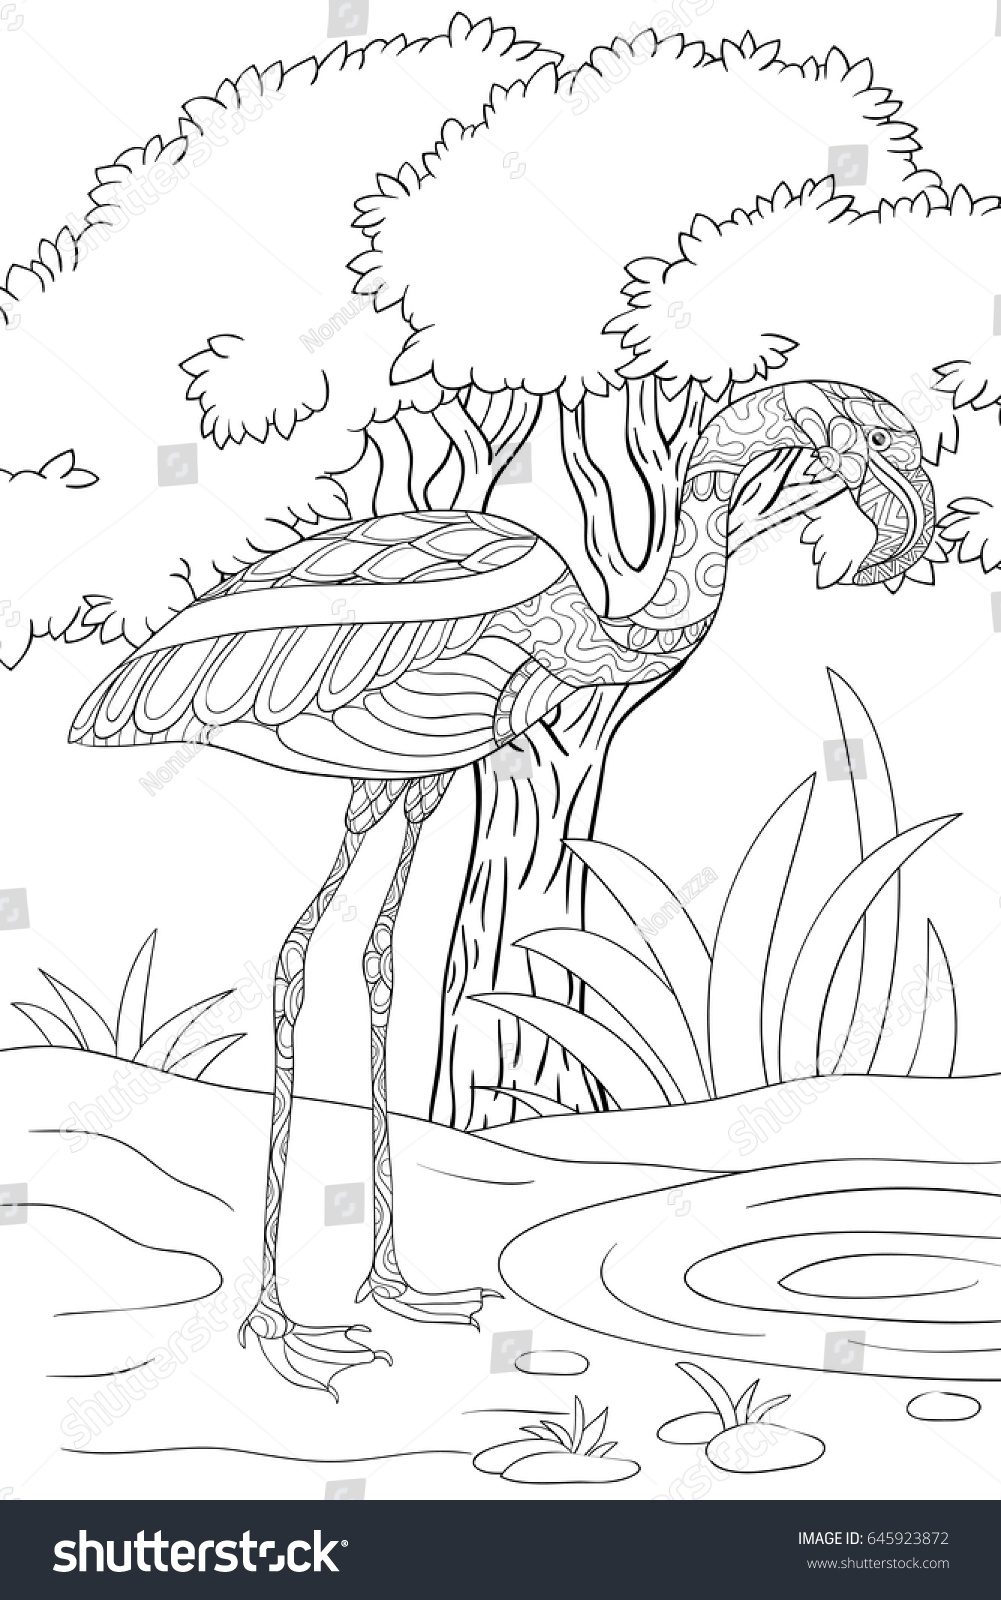 Coloring sheets for adults flamingo - Adult Coloring Page Book Flamingo Zen Art Style Illustration